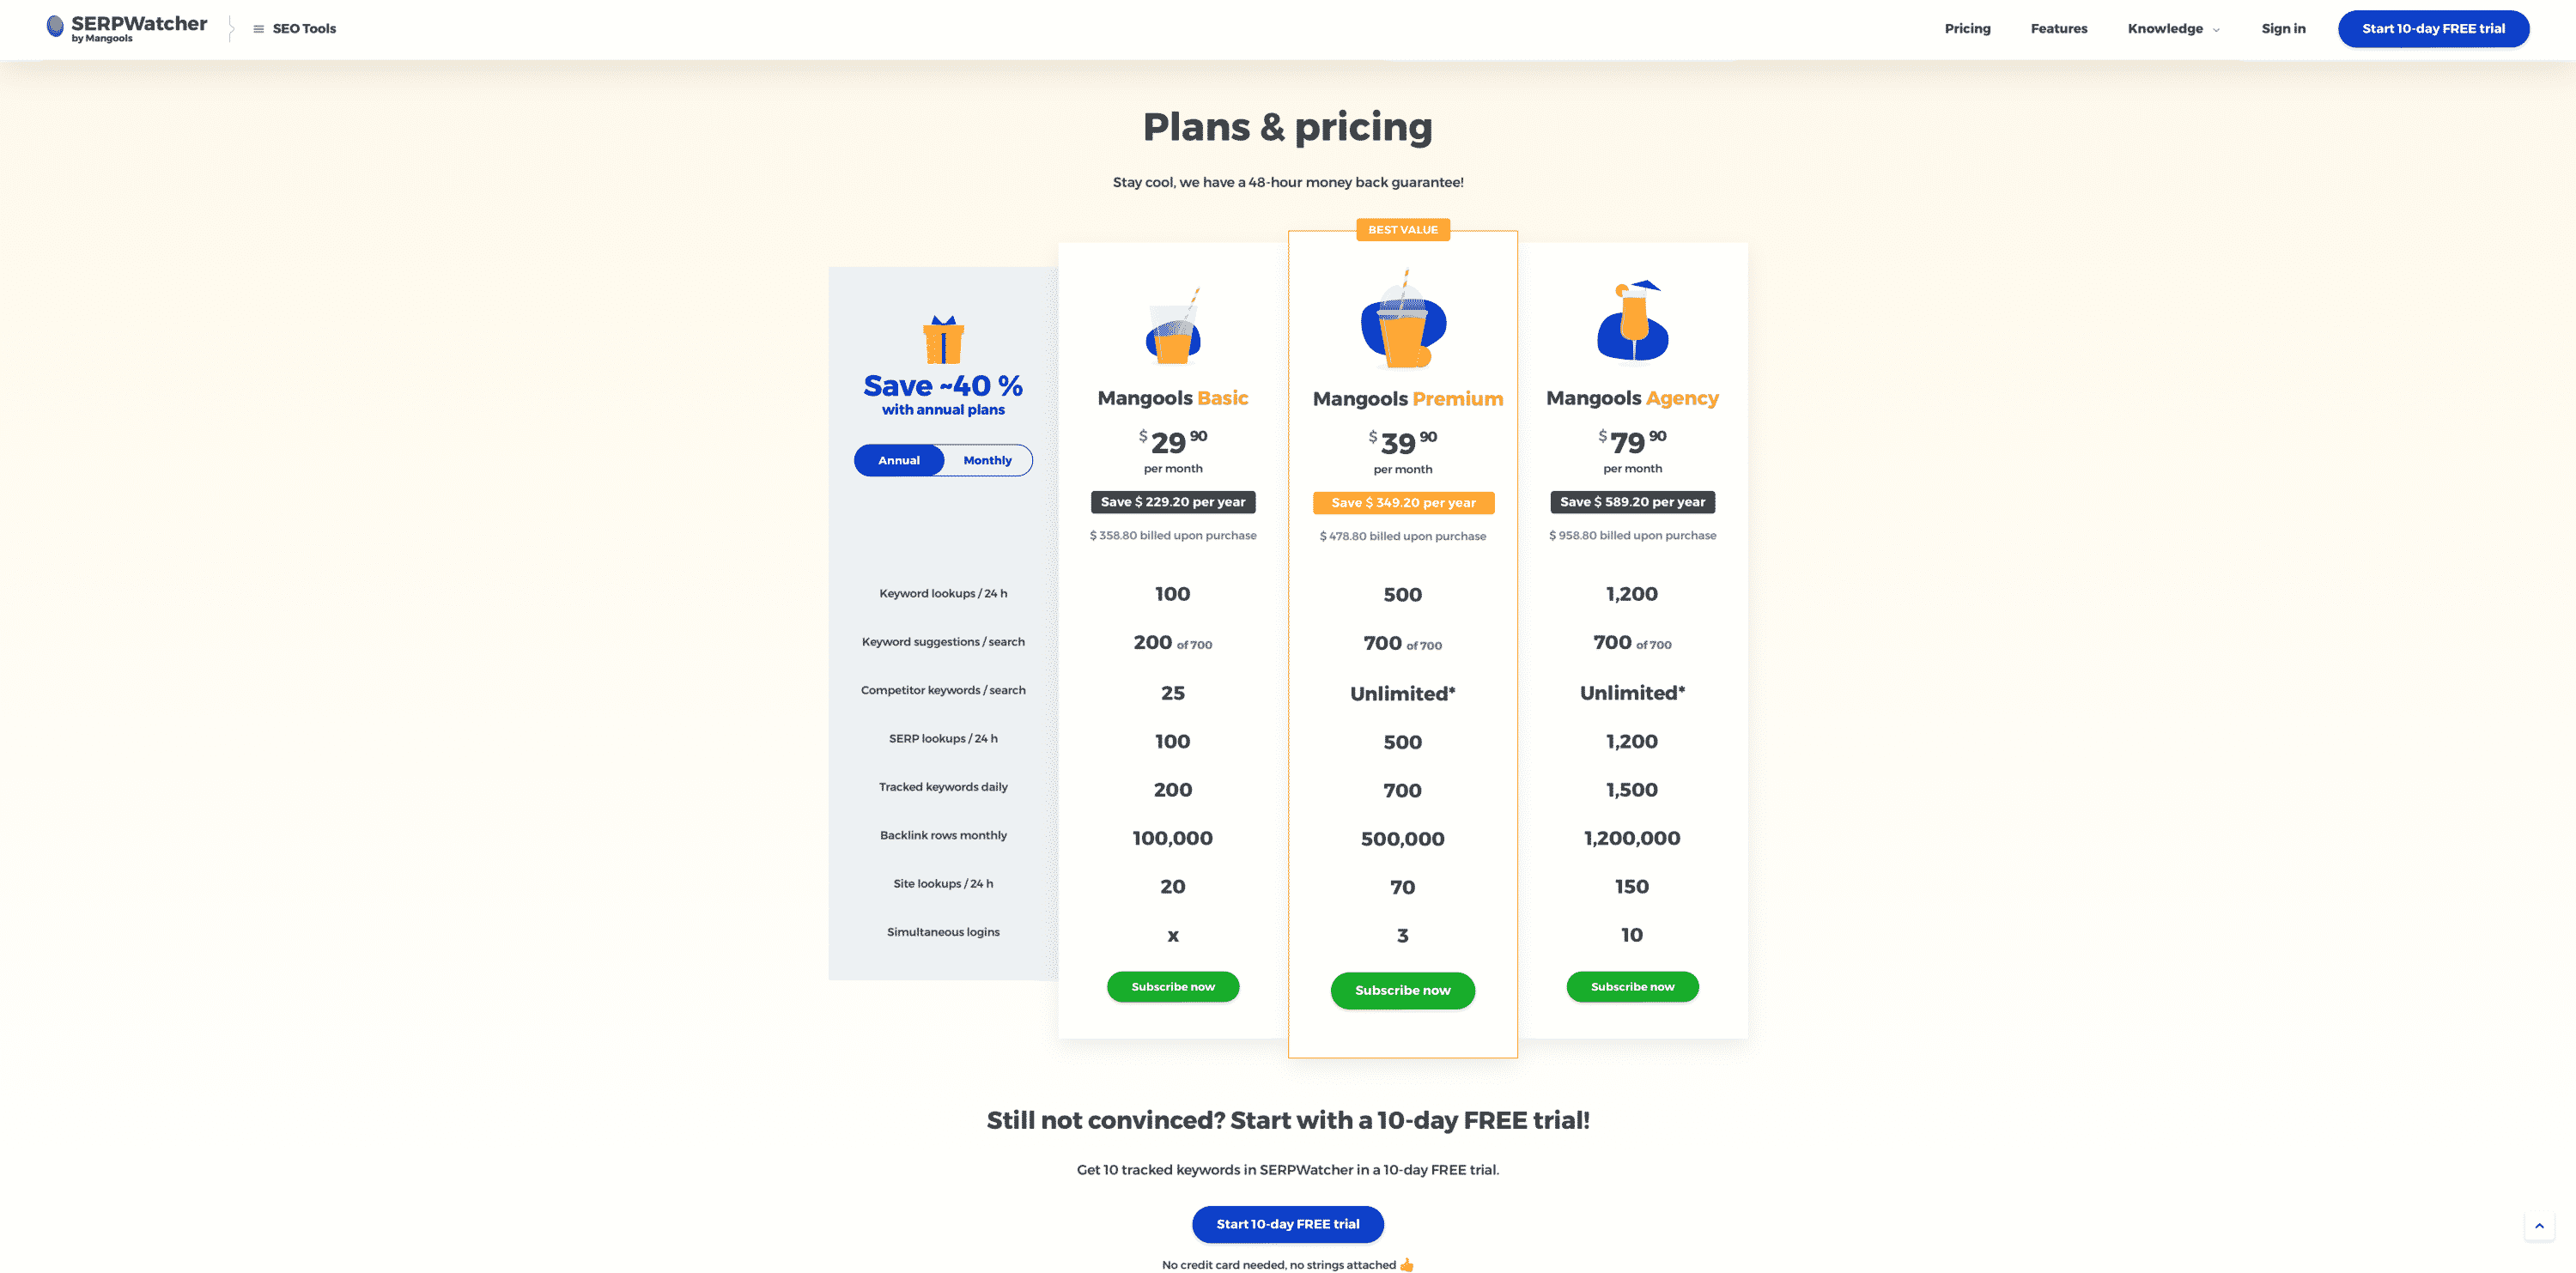 serpwatcher-pricing-and-plans